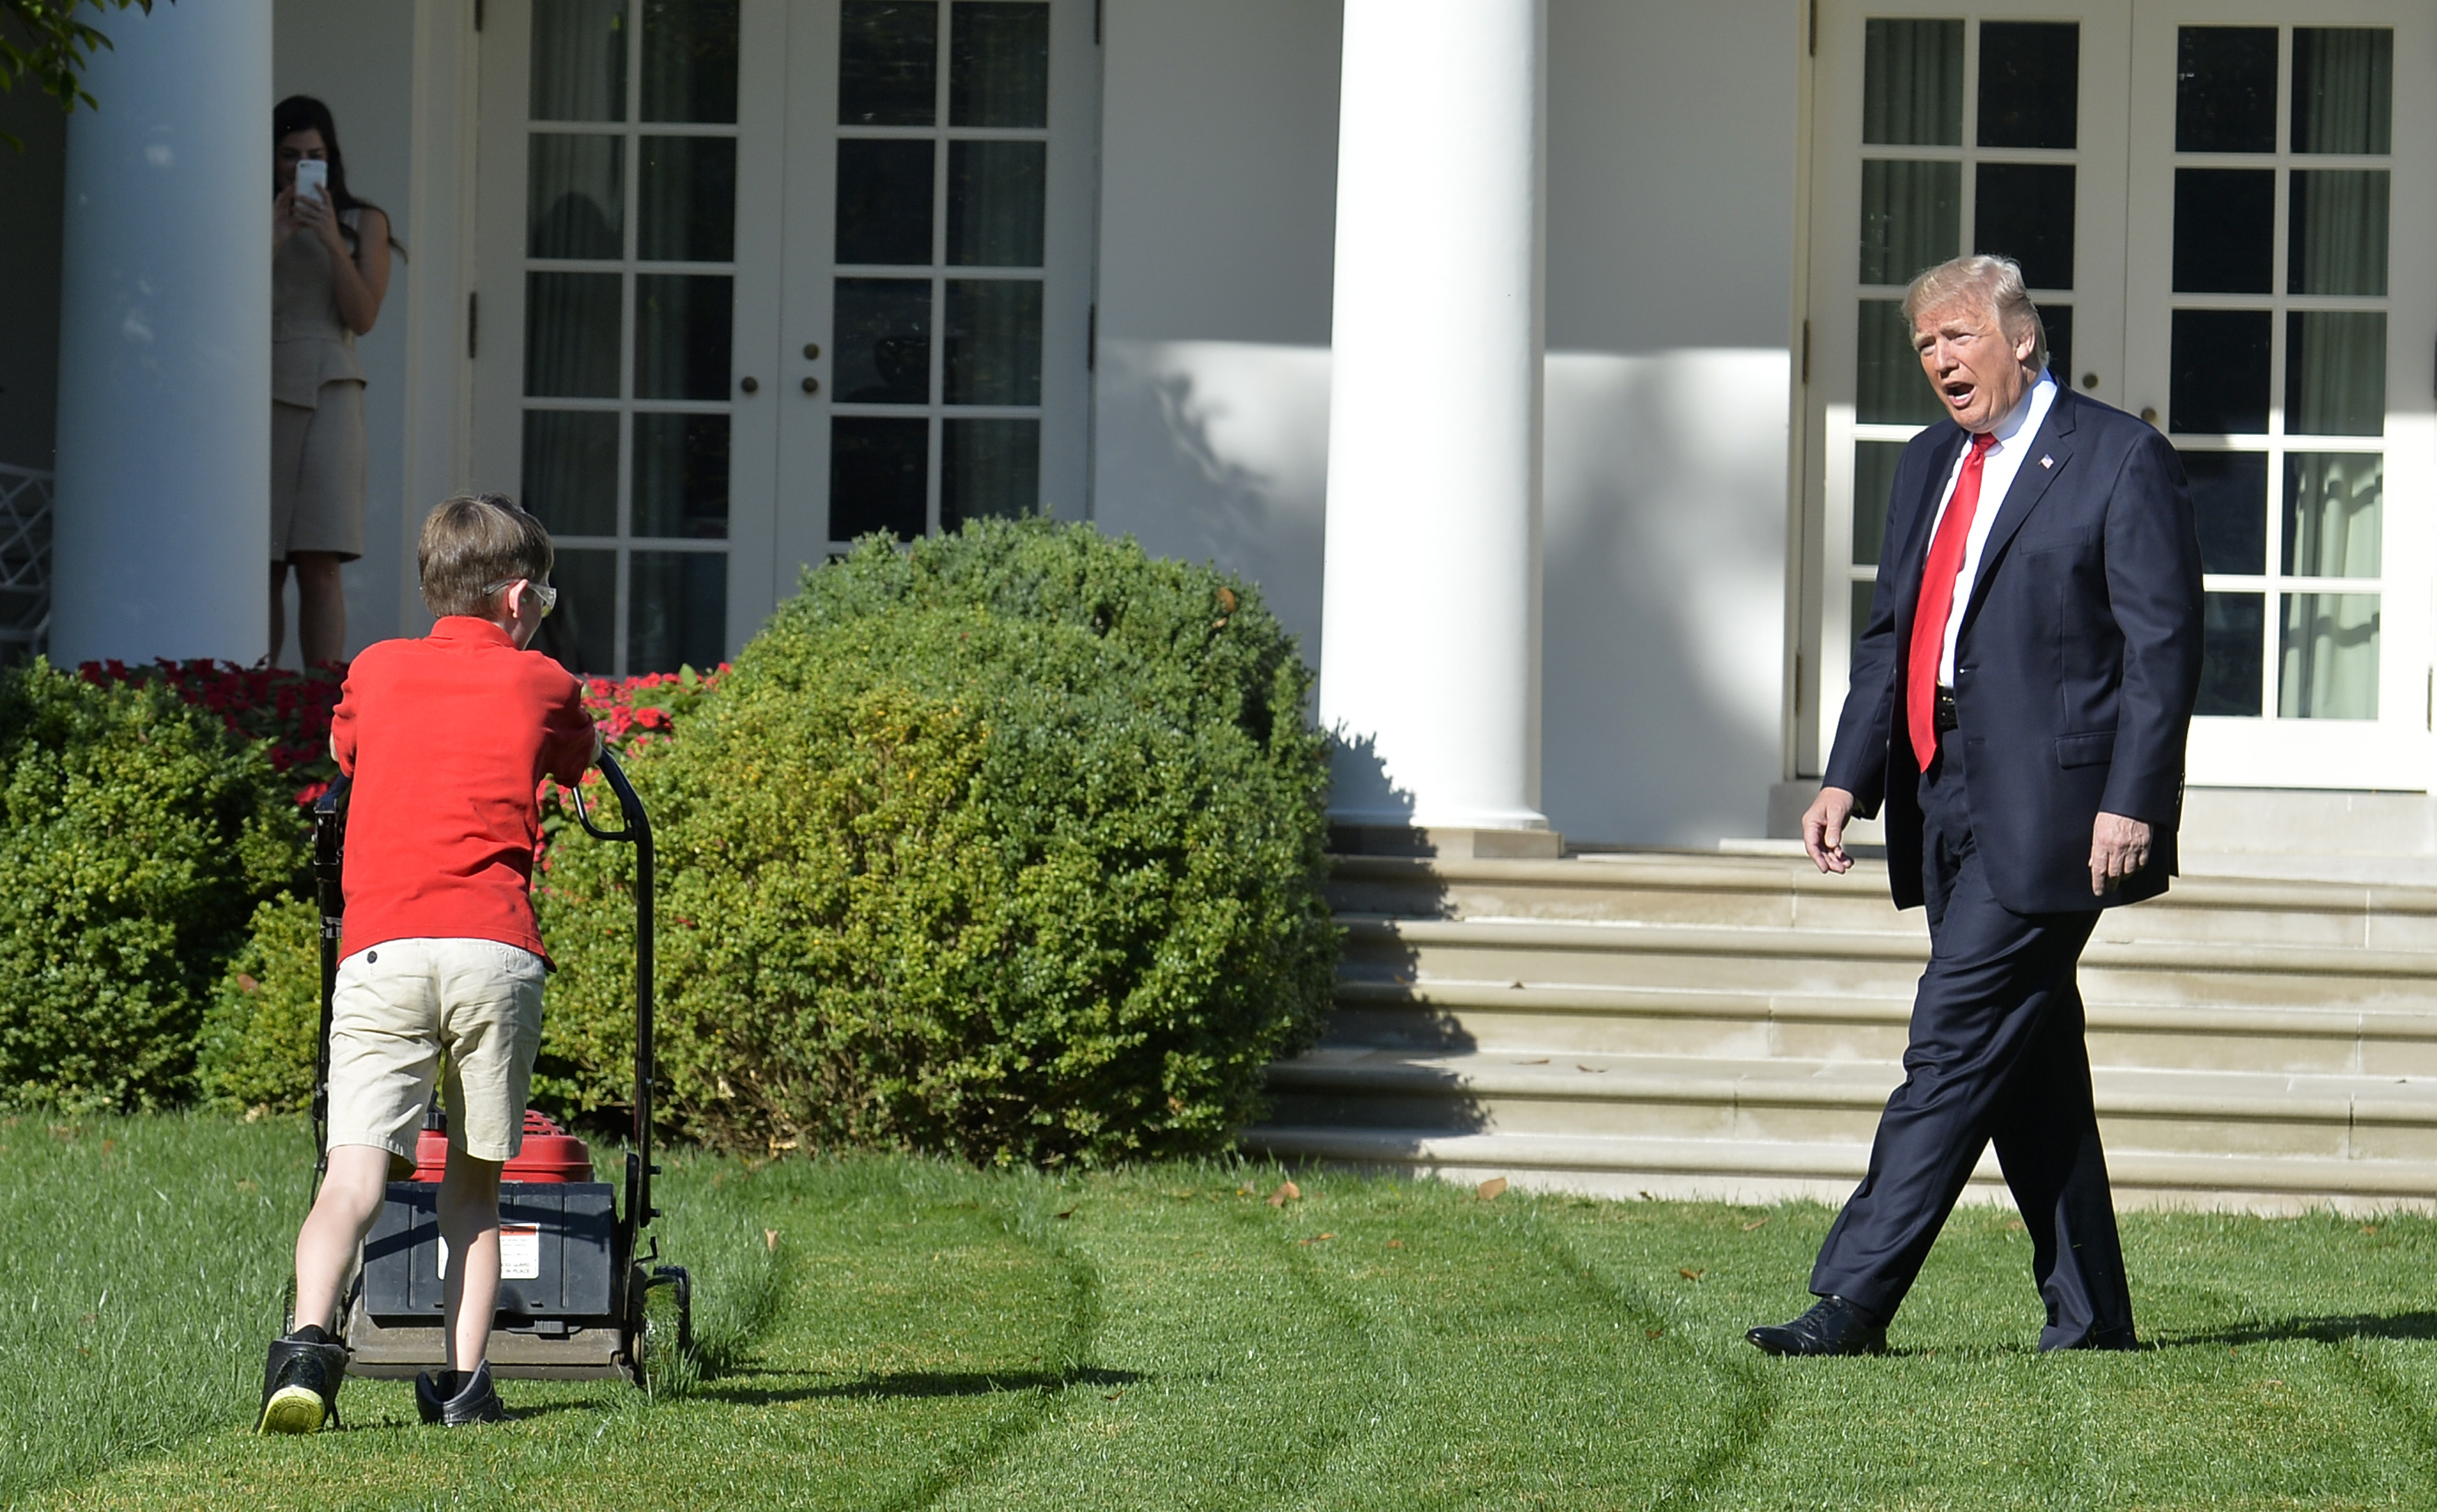 US President Donald Trump watches Frank Giaccio, 11, of Falls Church, Virginia, as he mows the lawn in the Rose Garden of the White House on September 15, 2017, in Washington, DC. Giaccio, who has his own lawn mowing business wrote a letter to the President asking if he could mow the lawn at the White House. / AFP PHOTO / Mike Theiler (Photo credit should read MIKE THEILER/AFP/Getty Images)